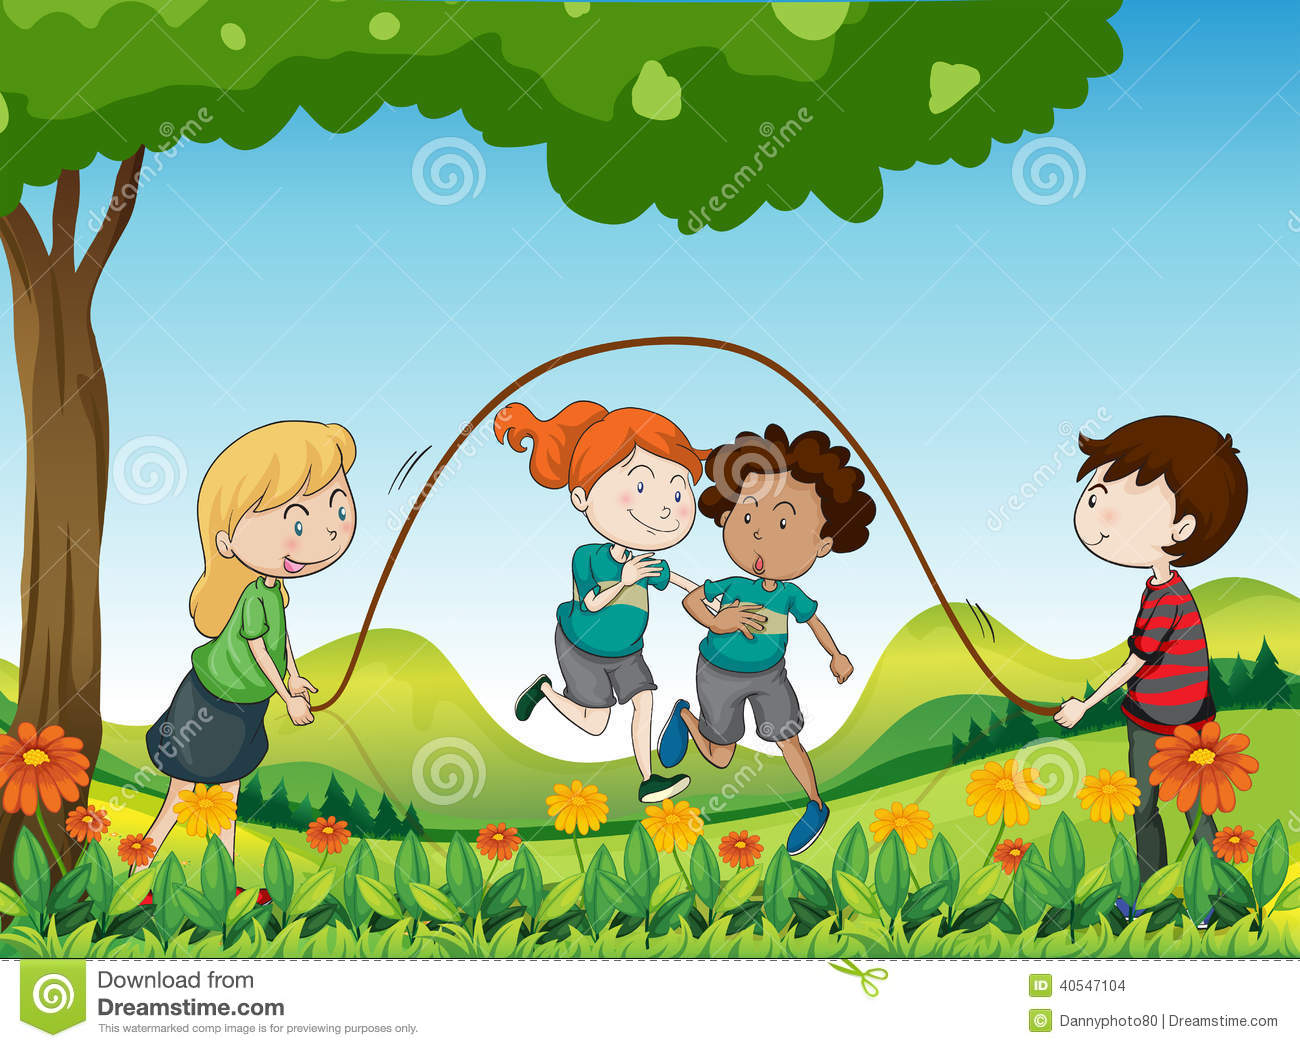 Cute Baby Girl Swing Hd Wallpaper Four Kids Playing Under The Tree Stock Vector Image